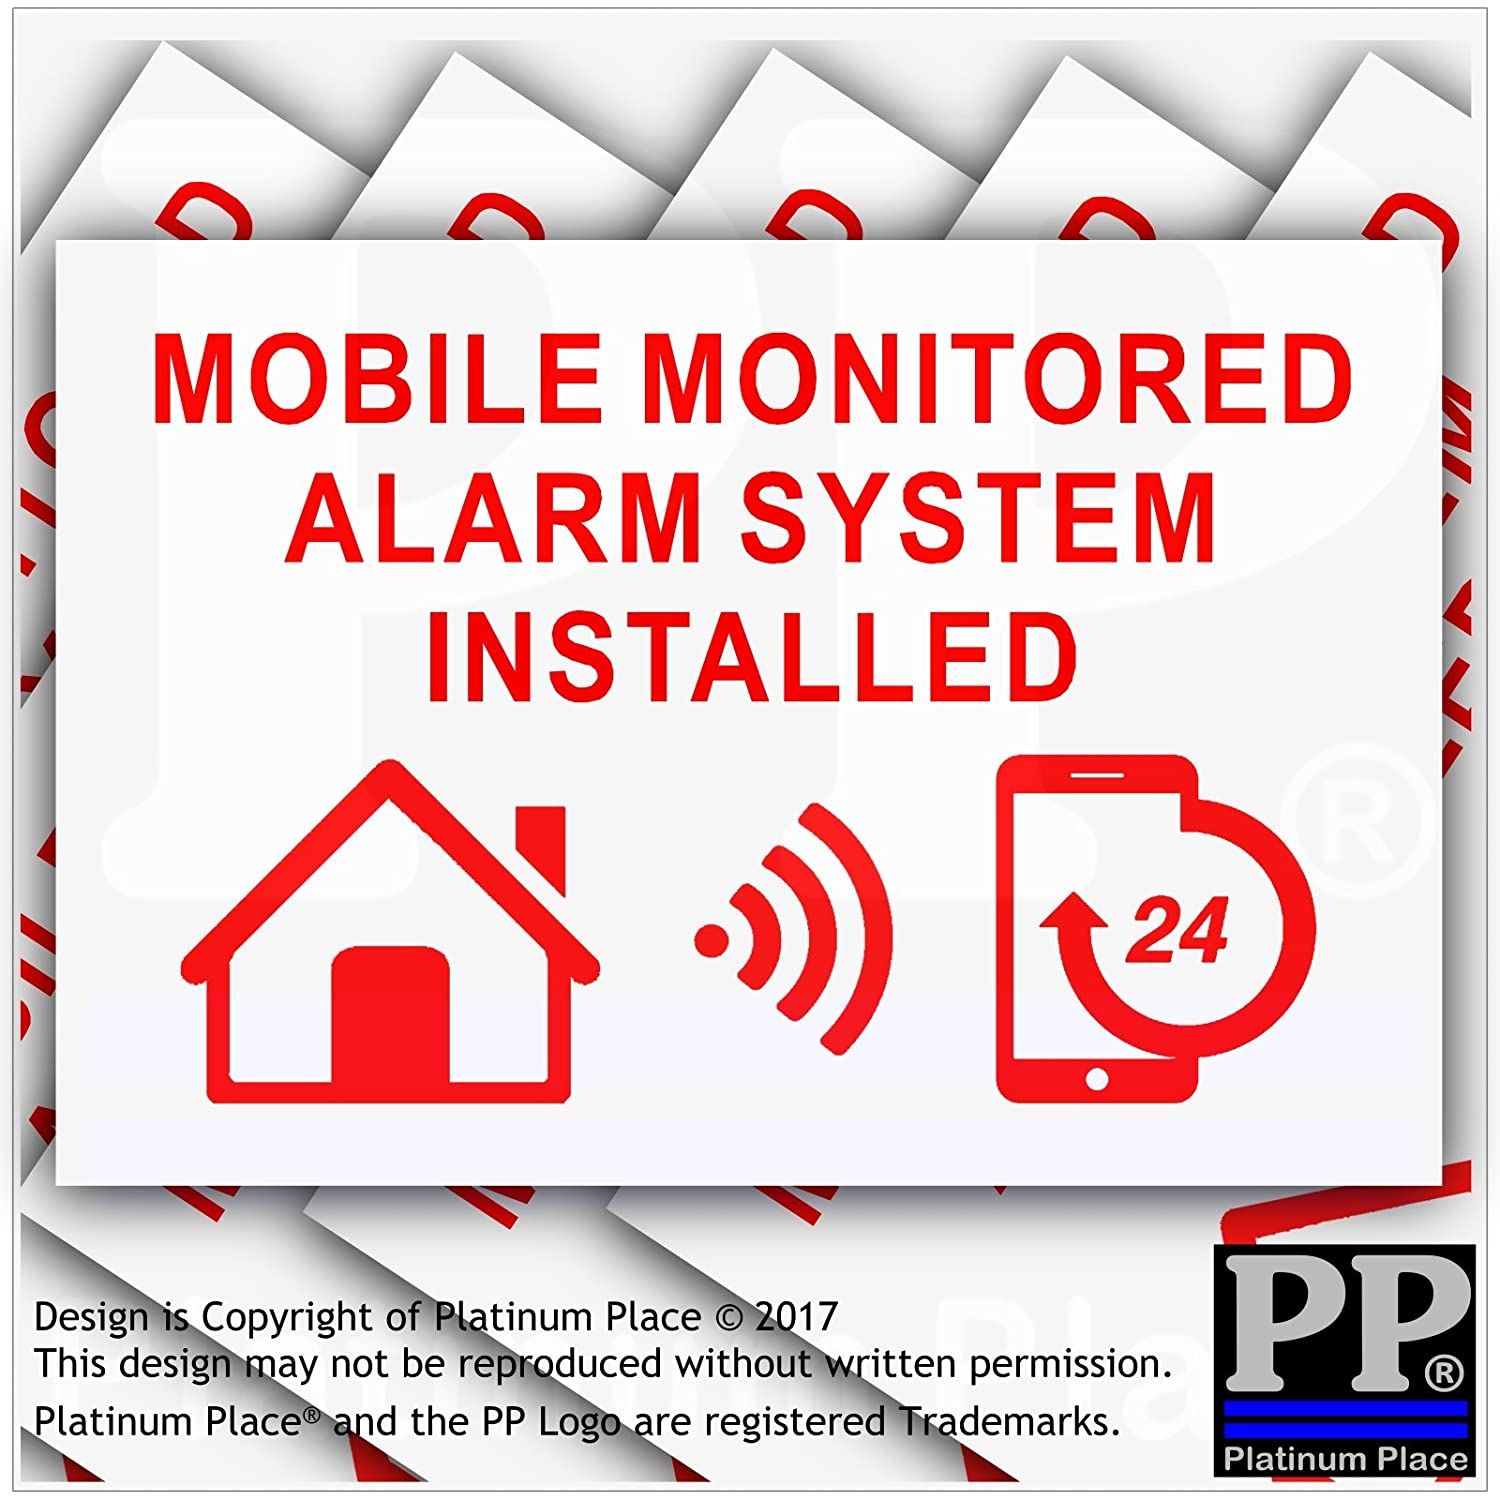 6 x MOBILE Monitored Alarm System Installed Stickers-130mm Red on White External Application-24hr Security Warning Signs for Home, House, Flat, Business, Property-Self Adhesive Vinyl by Platinum Place